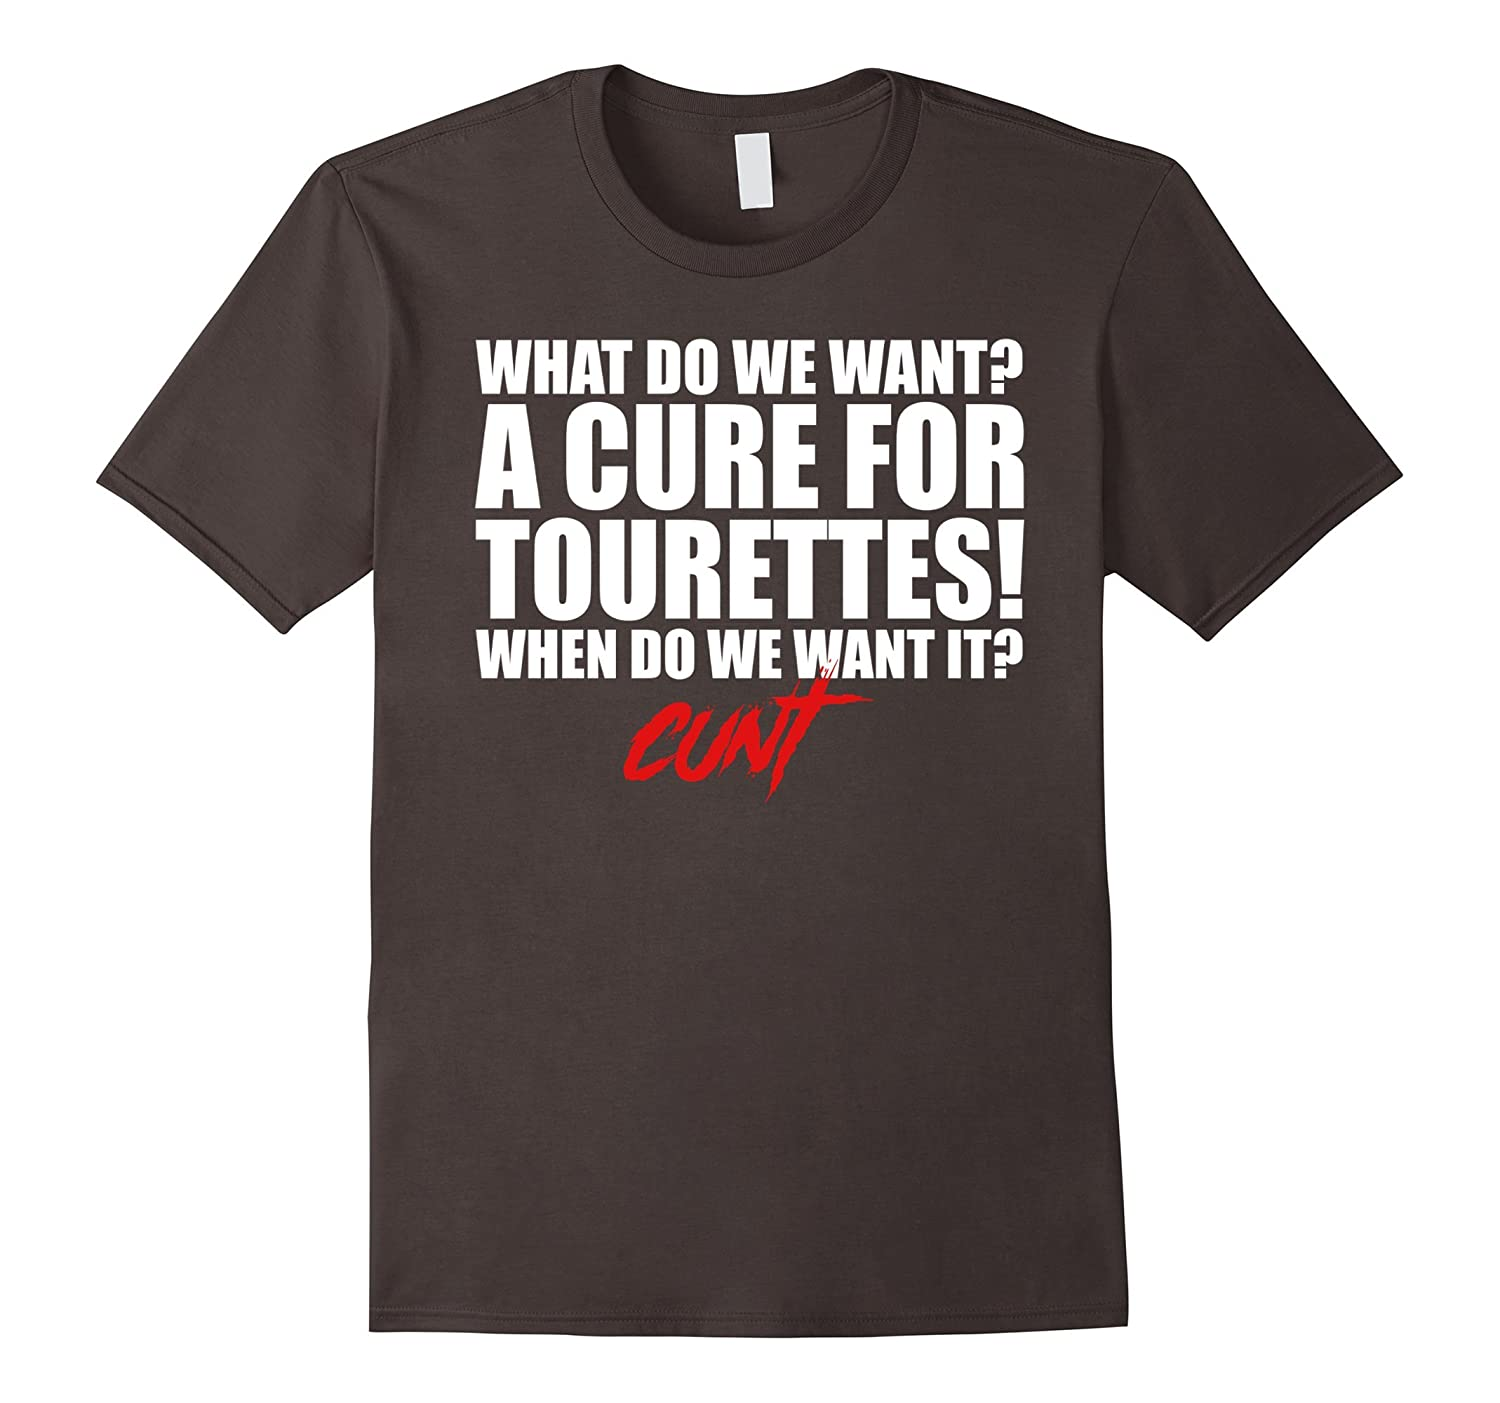 f5f0ae40ee A Cure For Tourettes T-shirt What Do We Want – Hntee.com